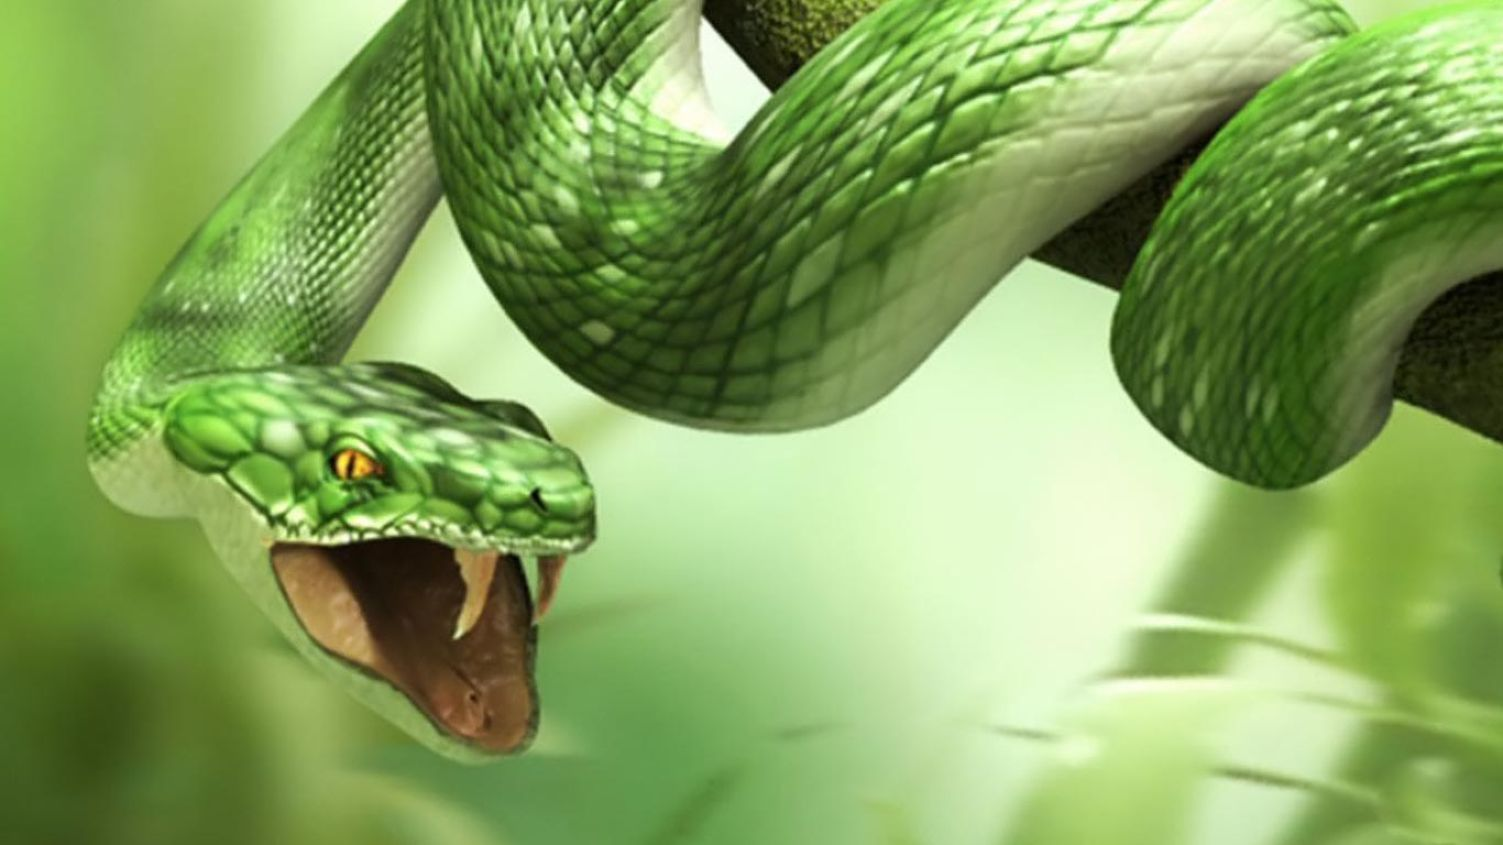 Wallpaper download for laptop - 3d Snake Hd For Laptop 1366 768 Wallpaper